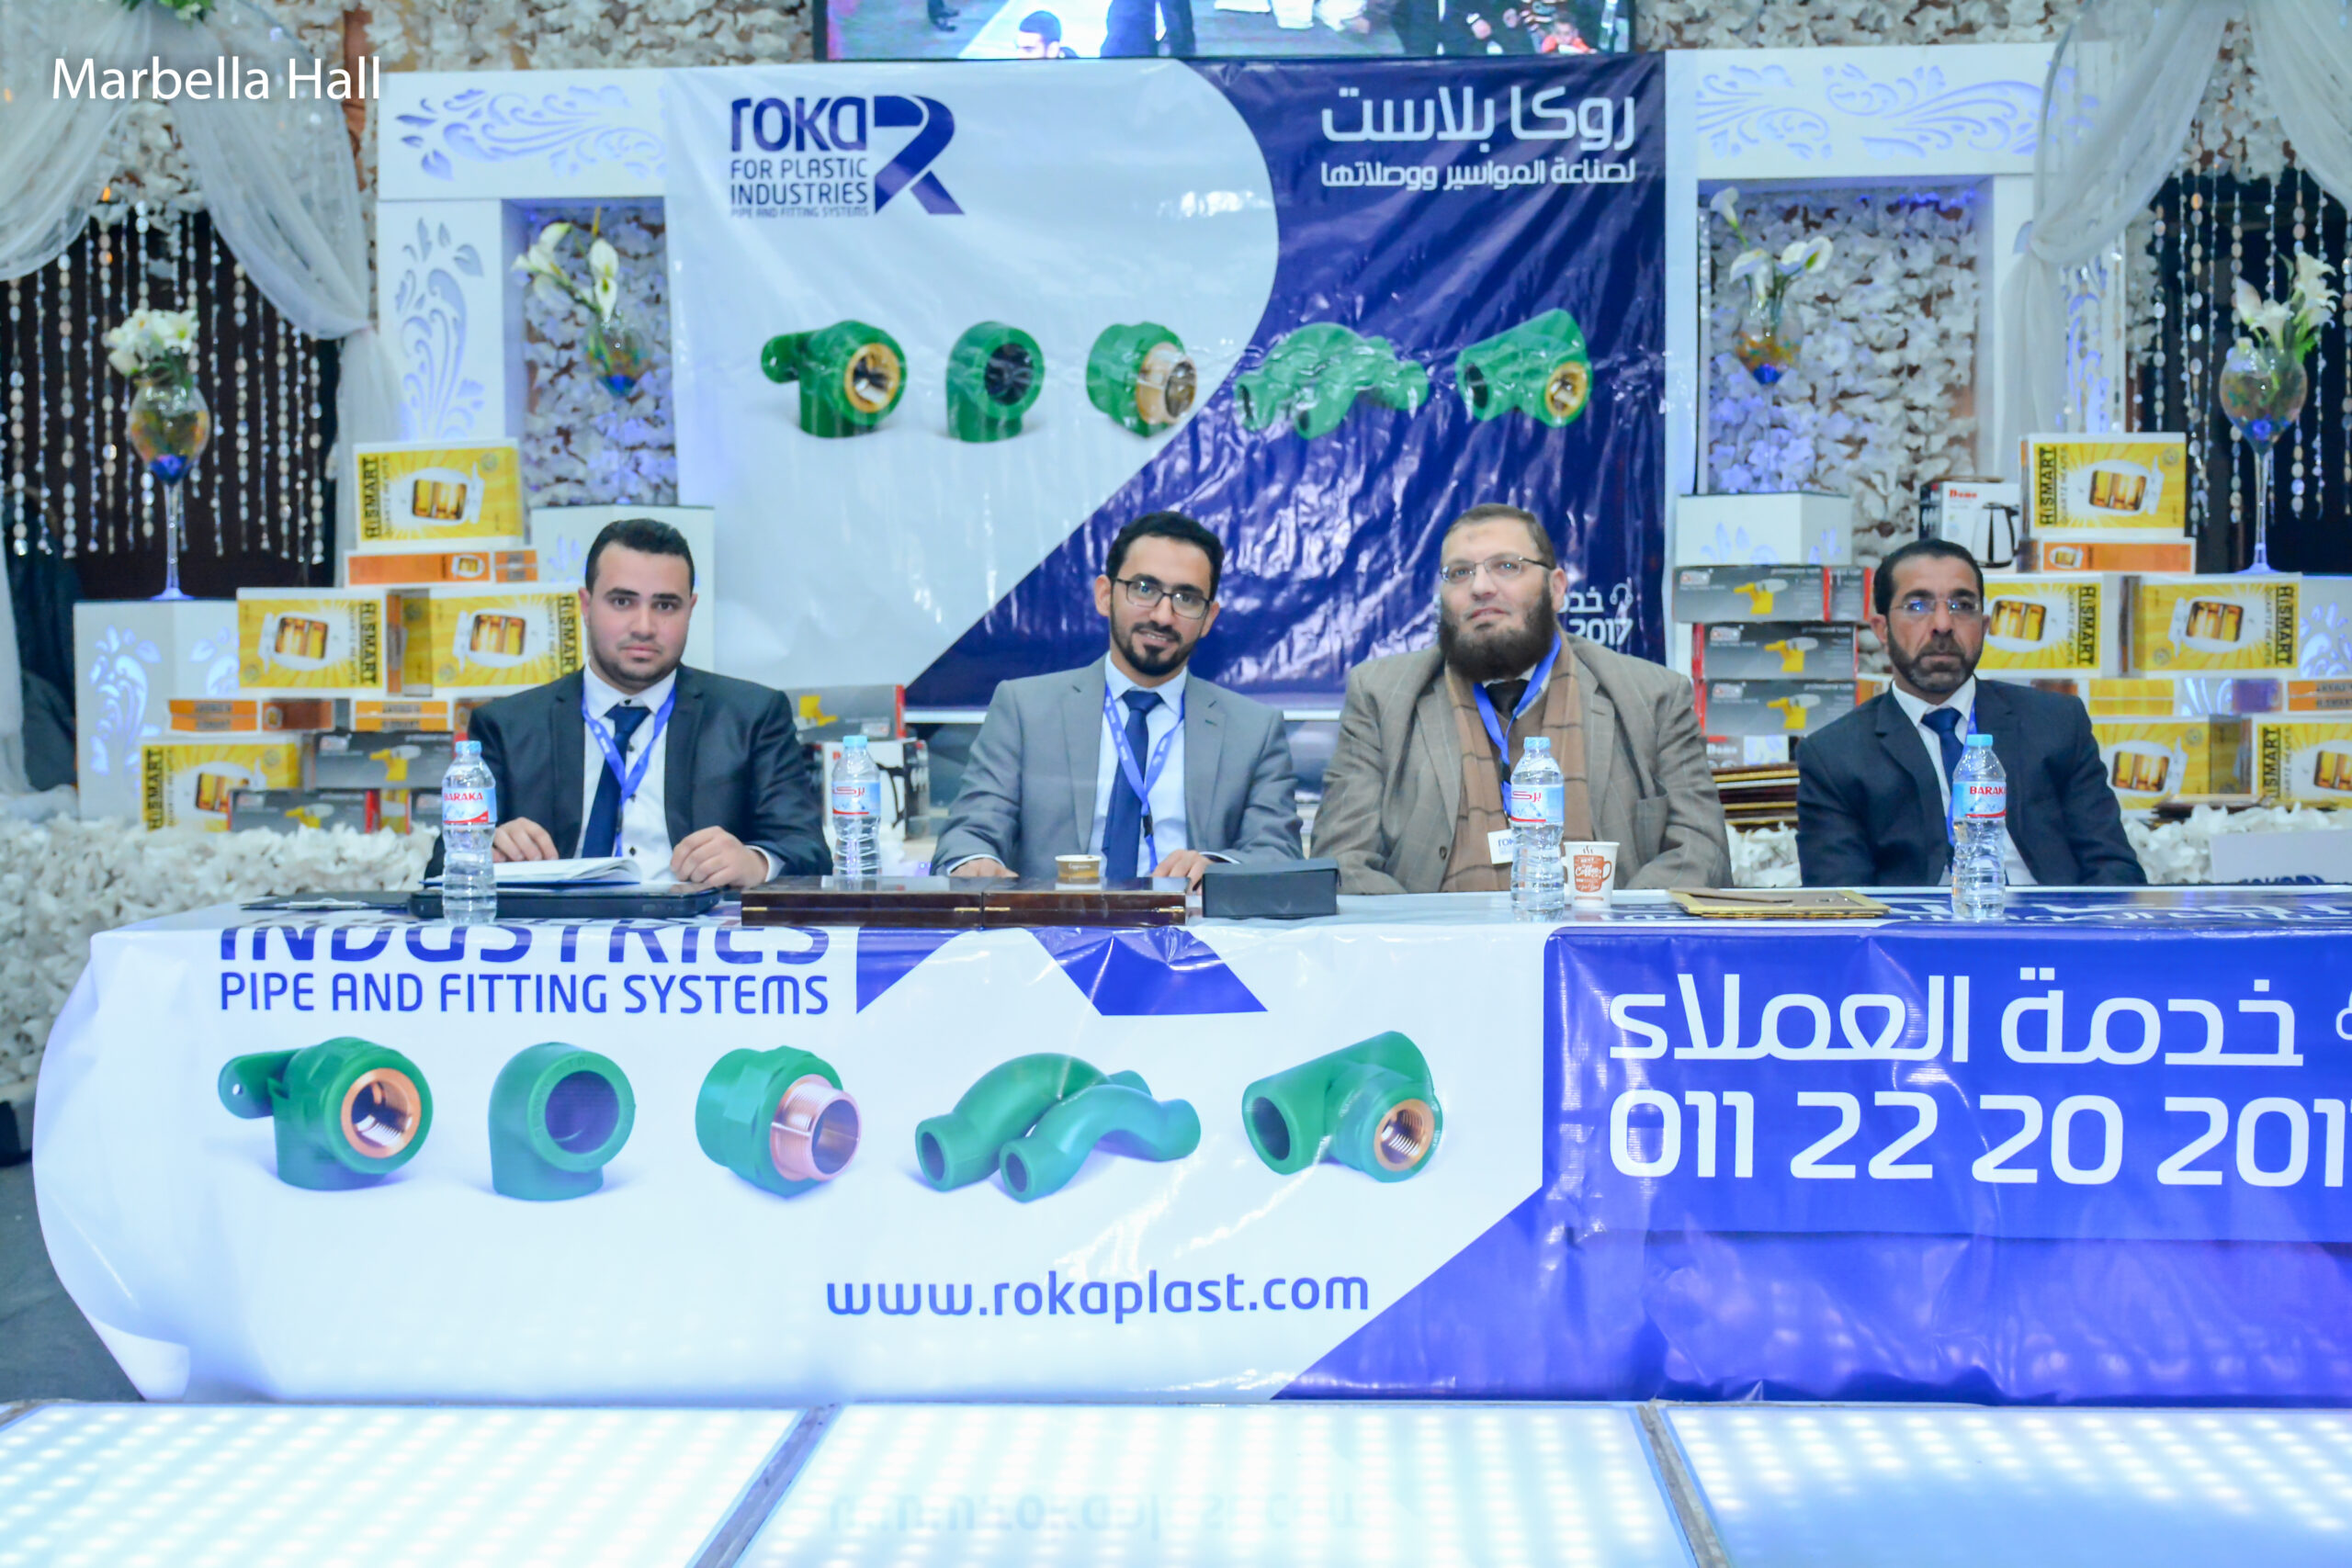 Annual event in Ismailia